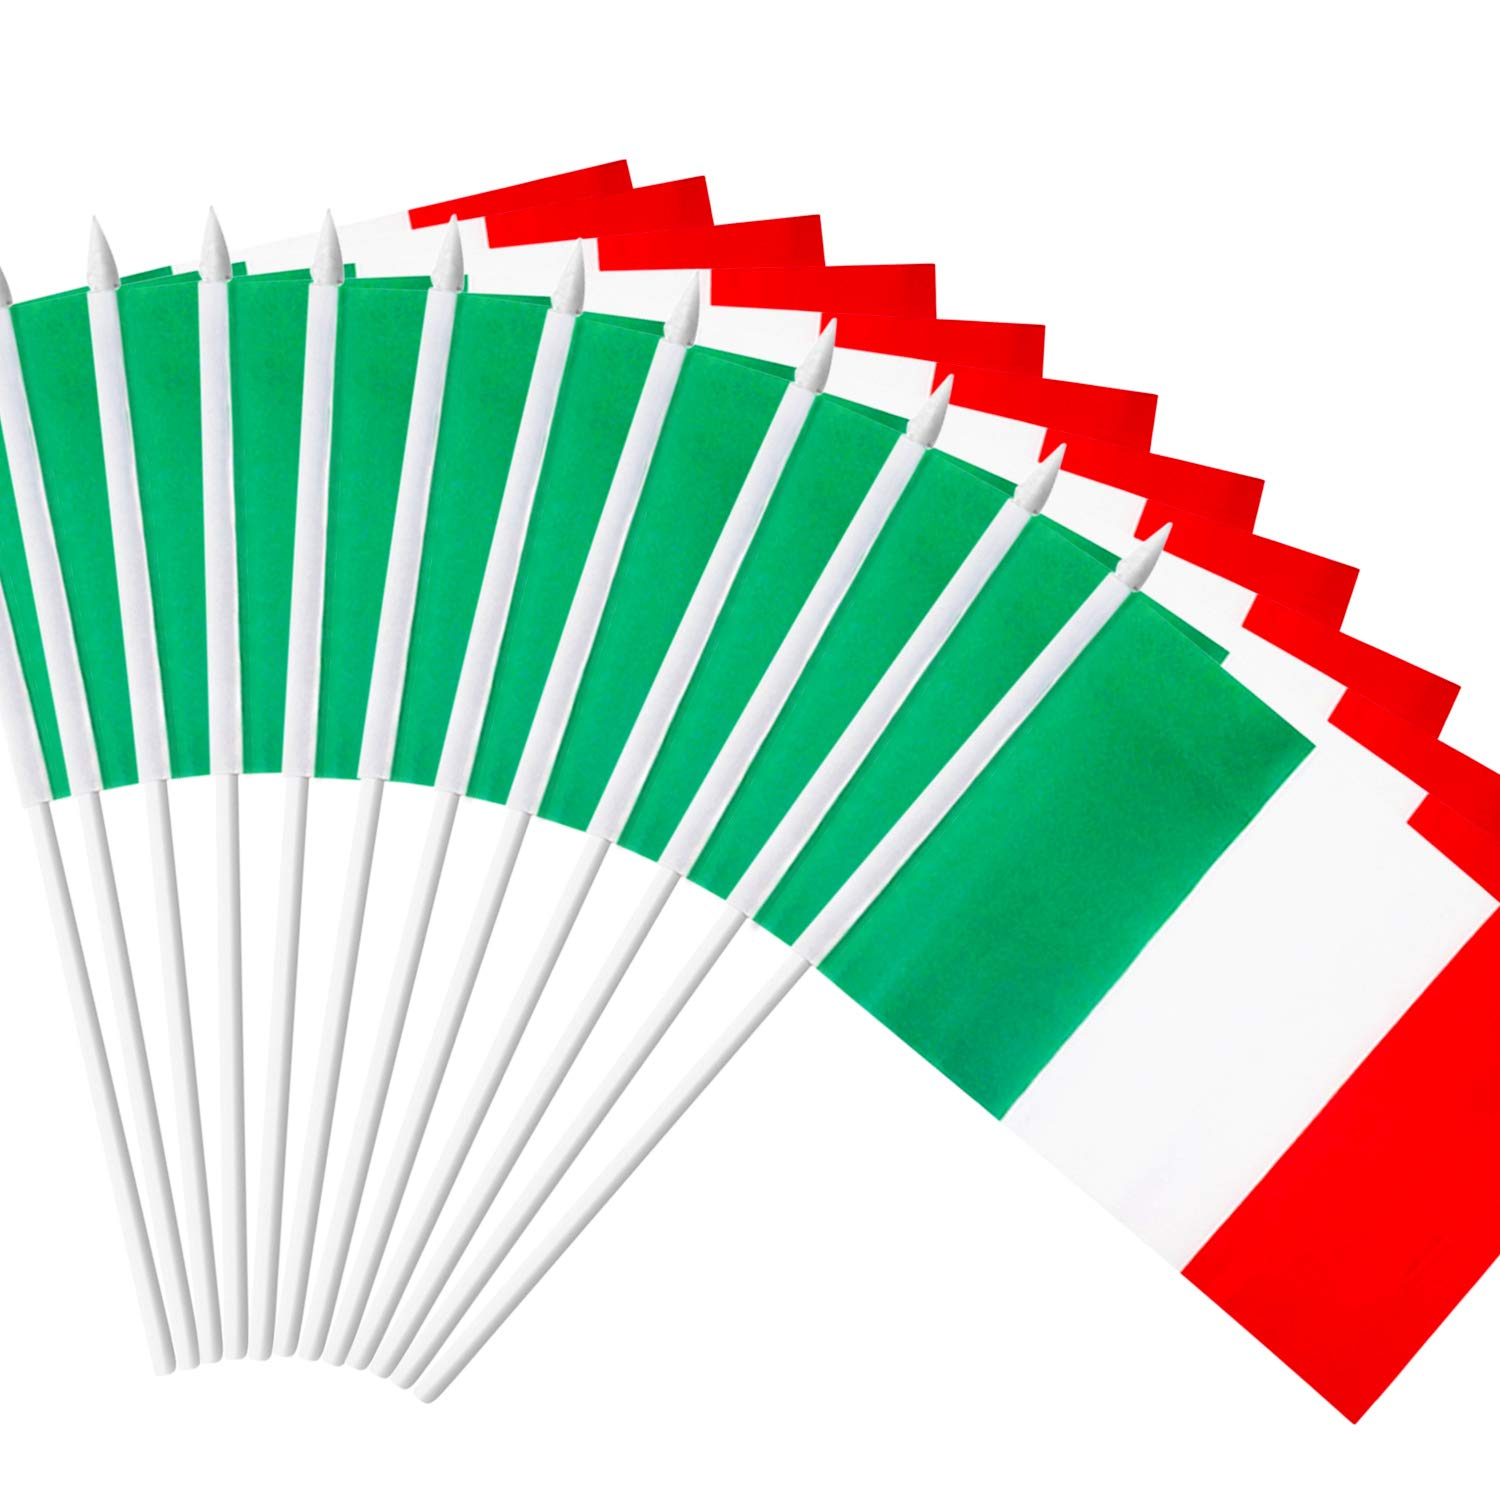 """Anley Italy Stick Flag, Italian 5x8 inch Handheld Mini Flag with 12"""" White Solid Pole - Vivid Color and Fade Resistant - 5 x 8 inch Hand Held Stick Flags with Spear Top (1 Dozen)"""